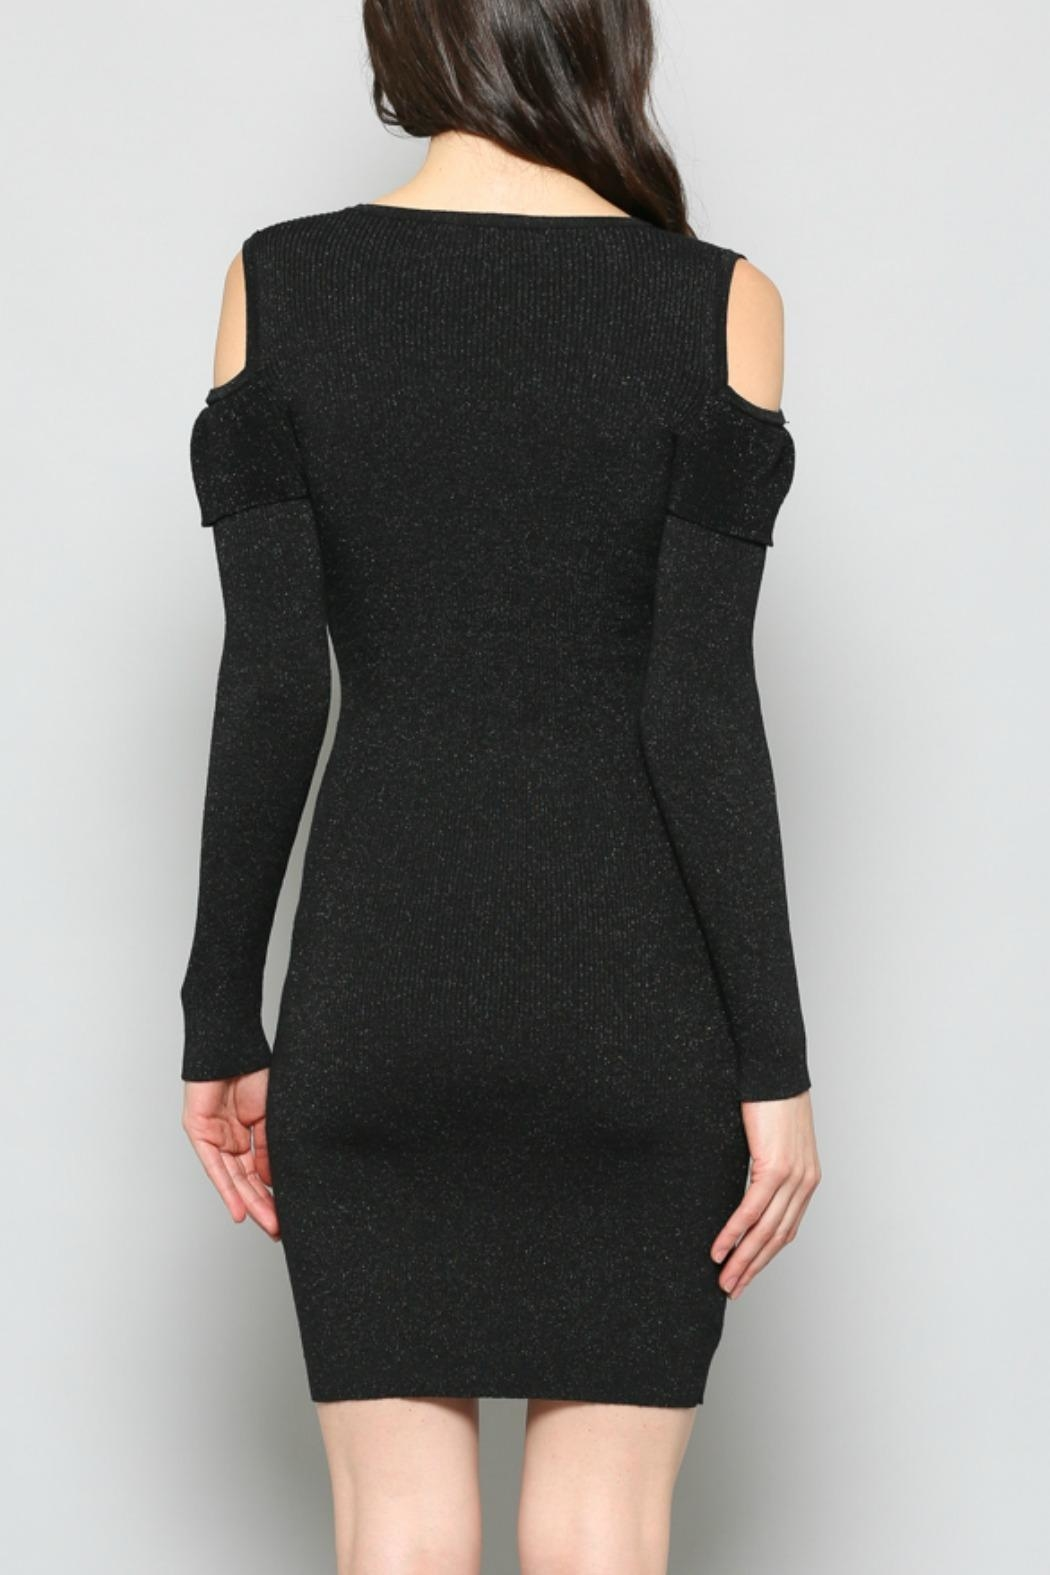 FATE by LFD Cold-Shoulder Rib-Knit Dress - Side Cropped Image